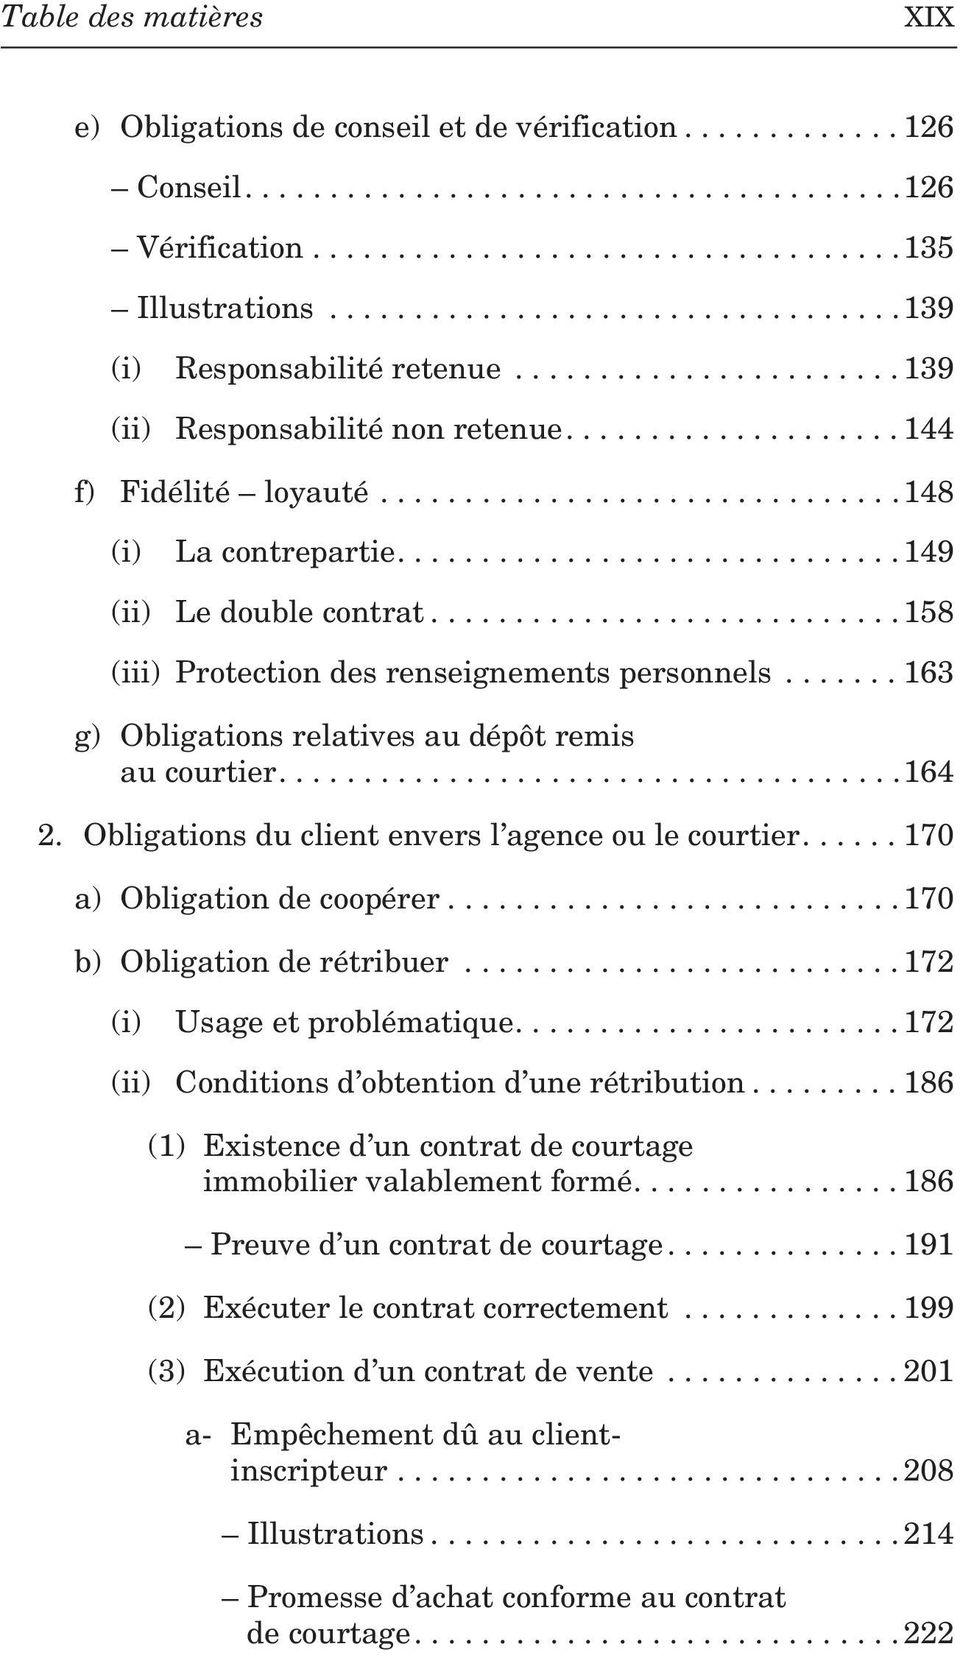 .............................149 (ii) Le double contrat............................ 158 (iii) Protection des renseignements personnels....... 163 g) Obligations relatives au dépôt remis au courtier.